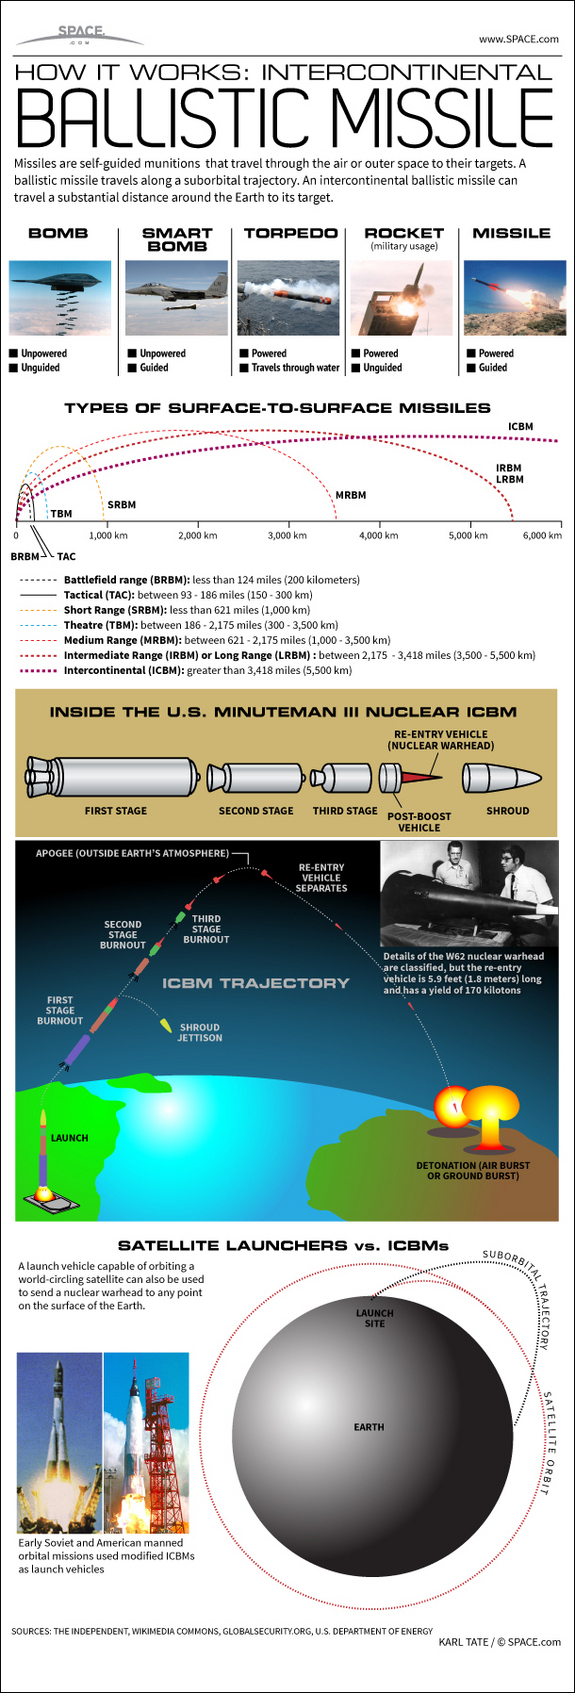 See how intercontinental ballistic missiles send nuclear warheads to any point on Earth, in this SPACE.com Infographic.